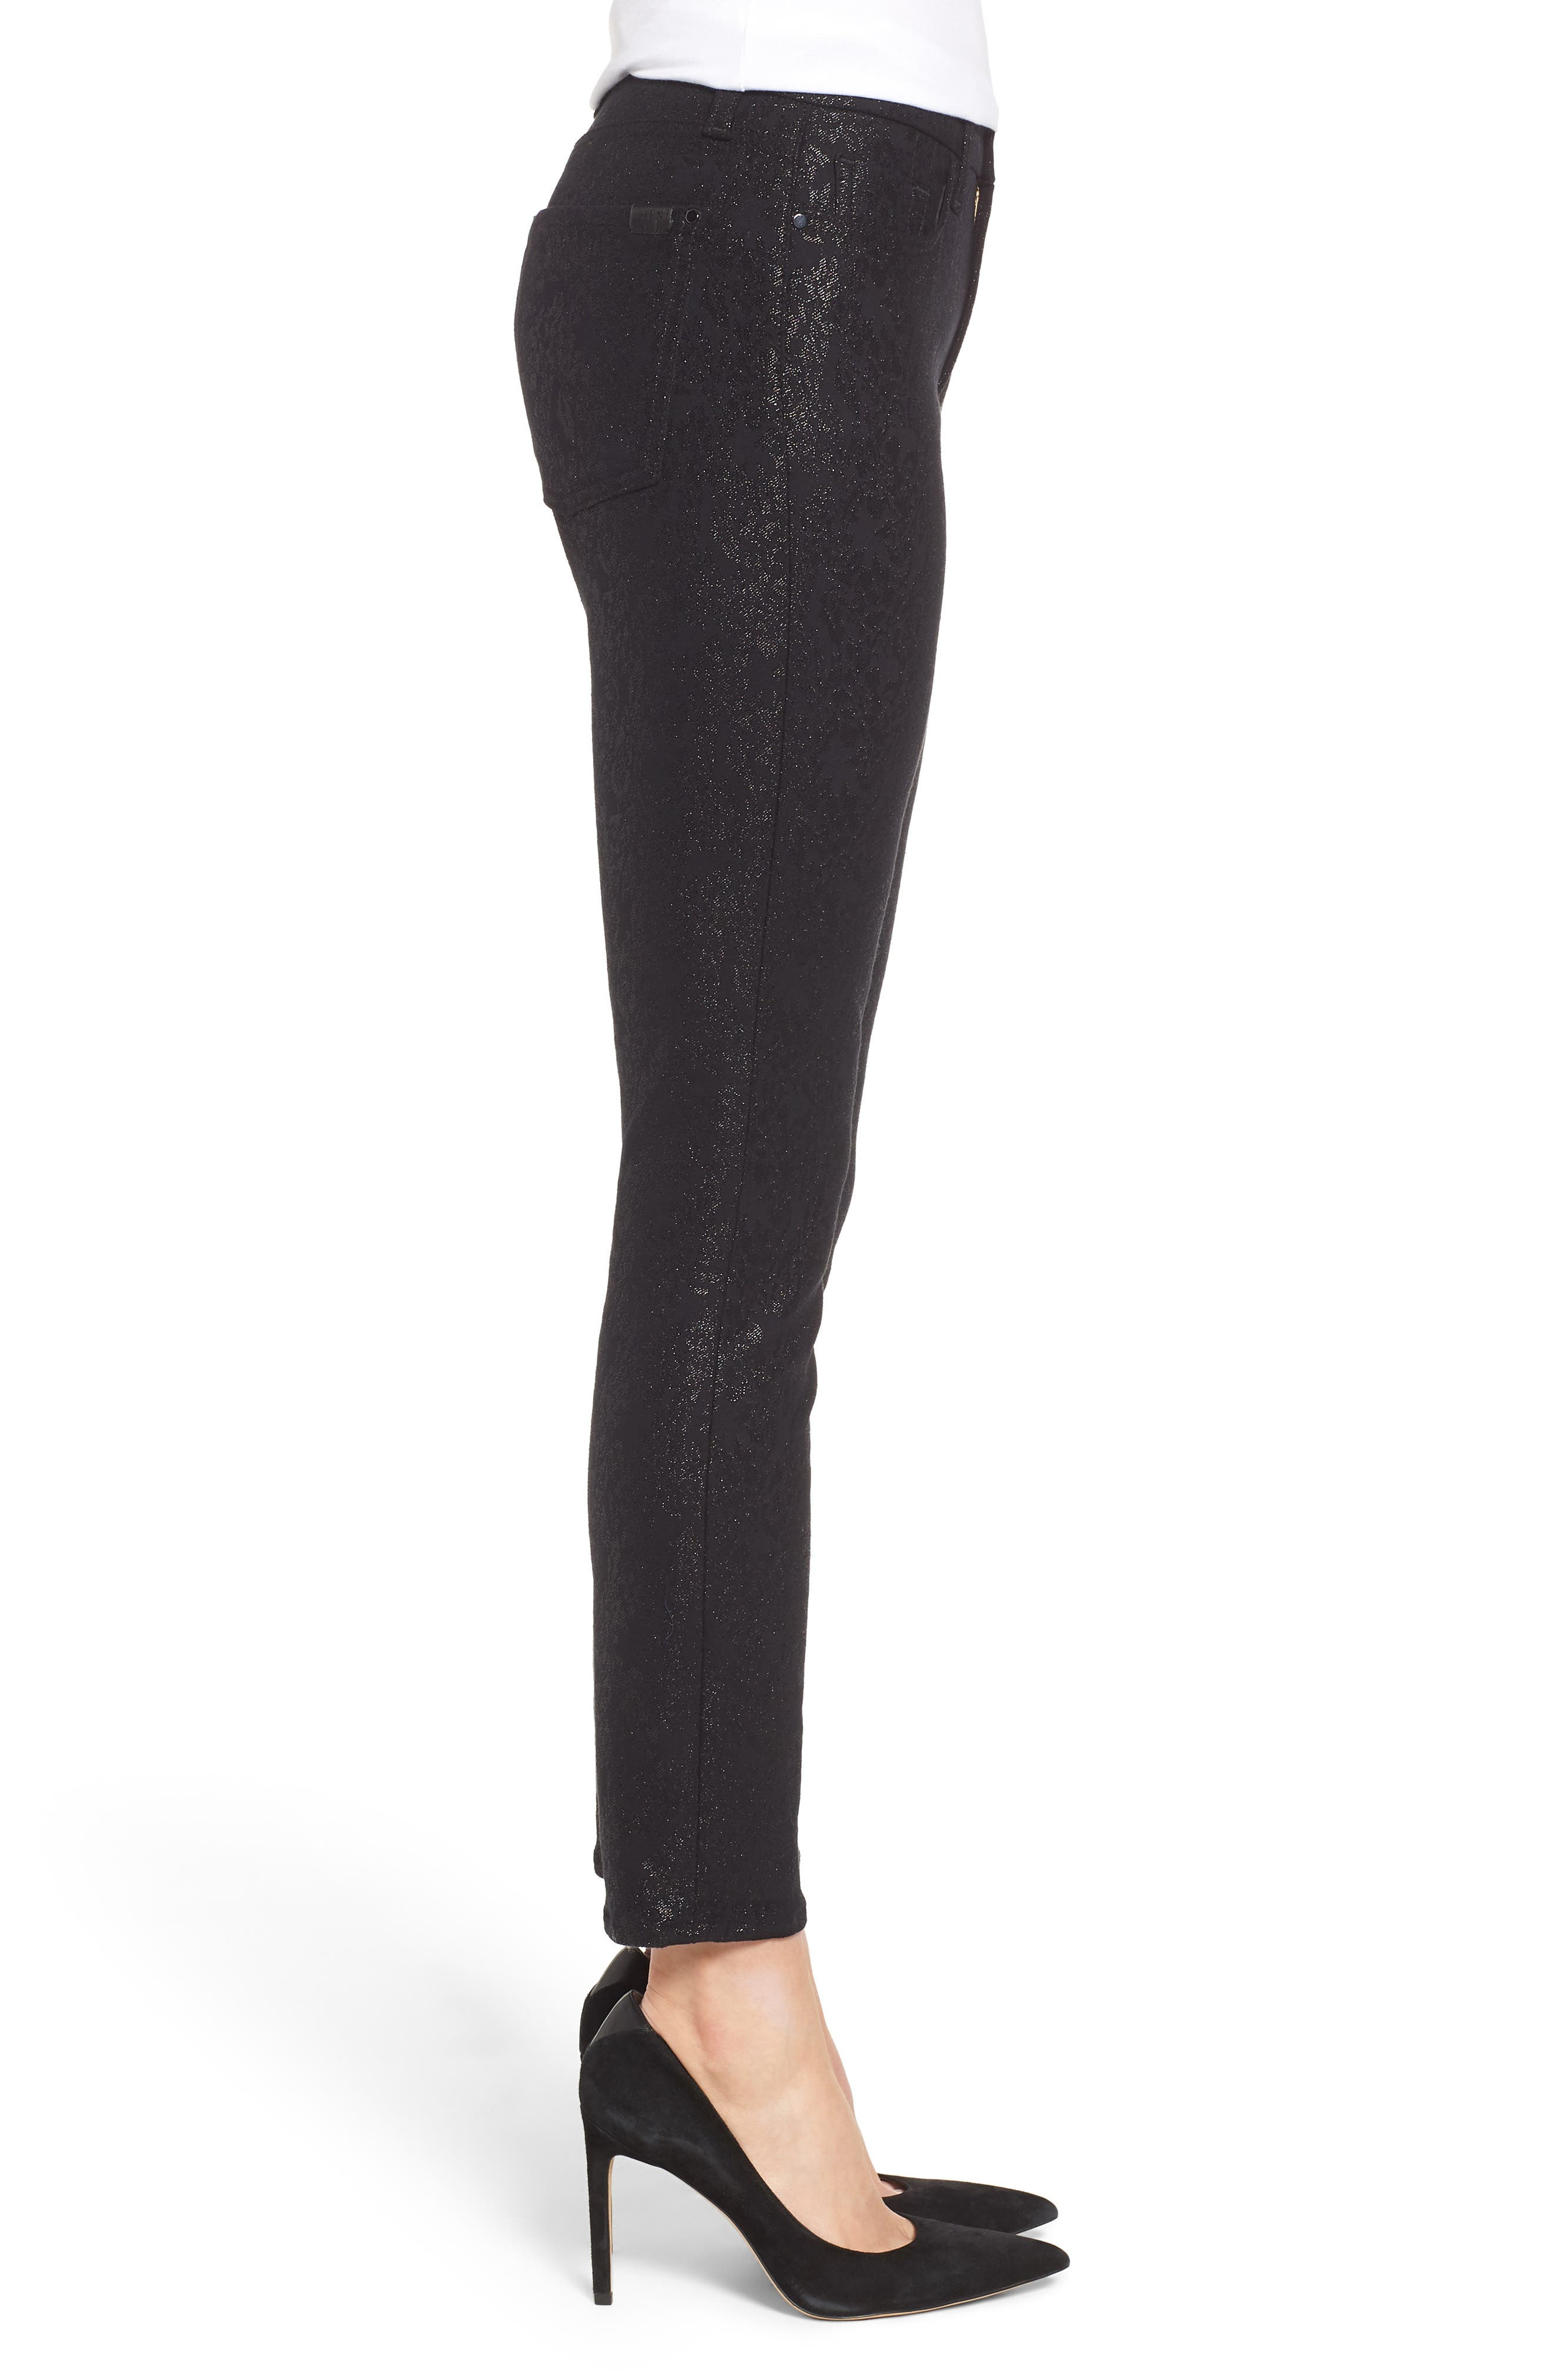 JEN7 BY 7 FOR ALL MANKIND, Floral Metallic Ankle Skinny Jeans, Alternate thumbnail 4, color, BLACK